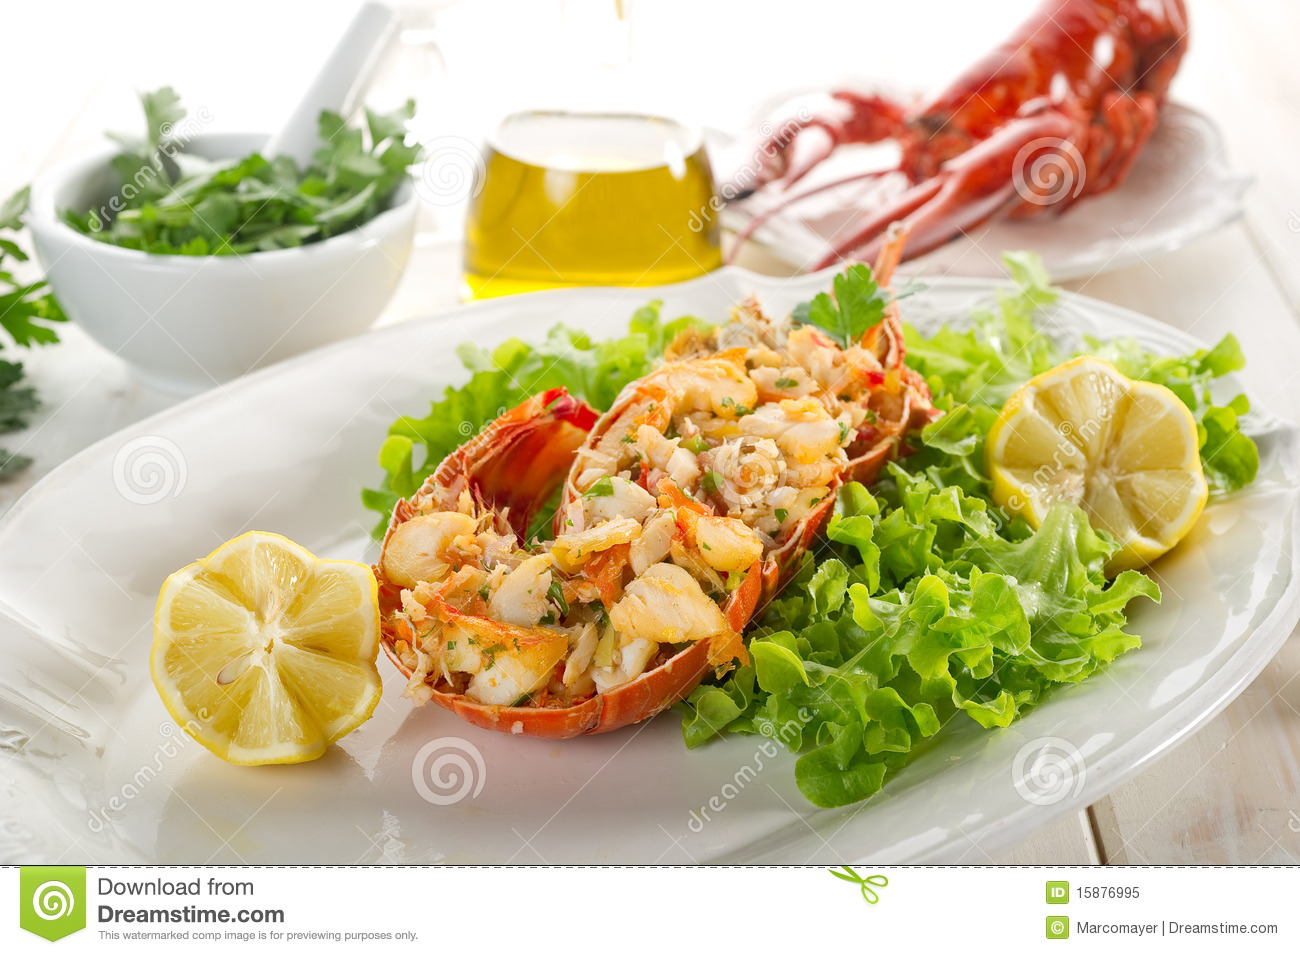 Lobster With Green Salad Royalty Free Stock Photo - Image: 15876995